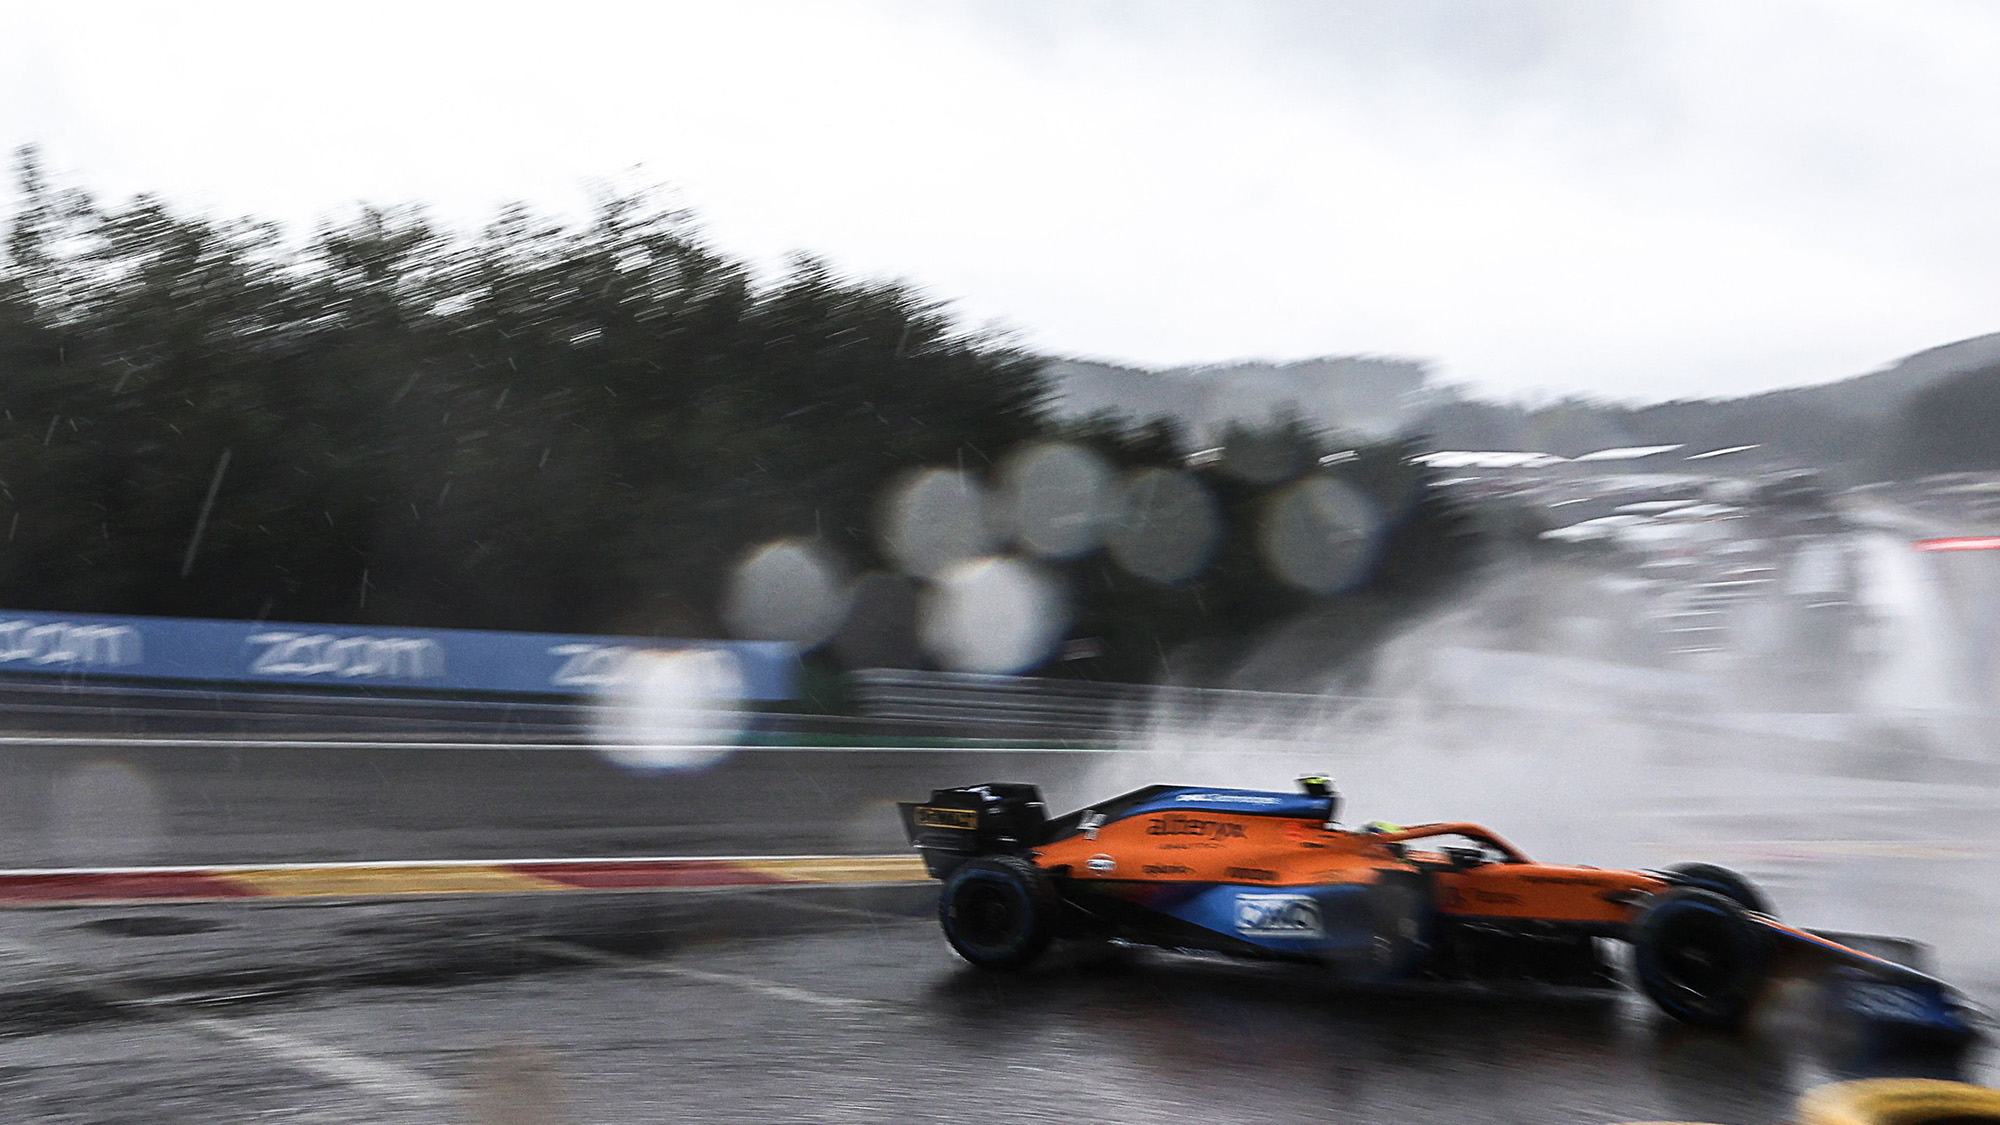 Lando Norris crashes out of qualifying for the 2021 Belgian Grand Prix